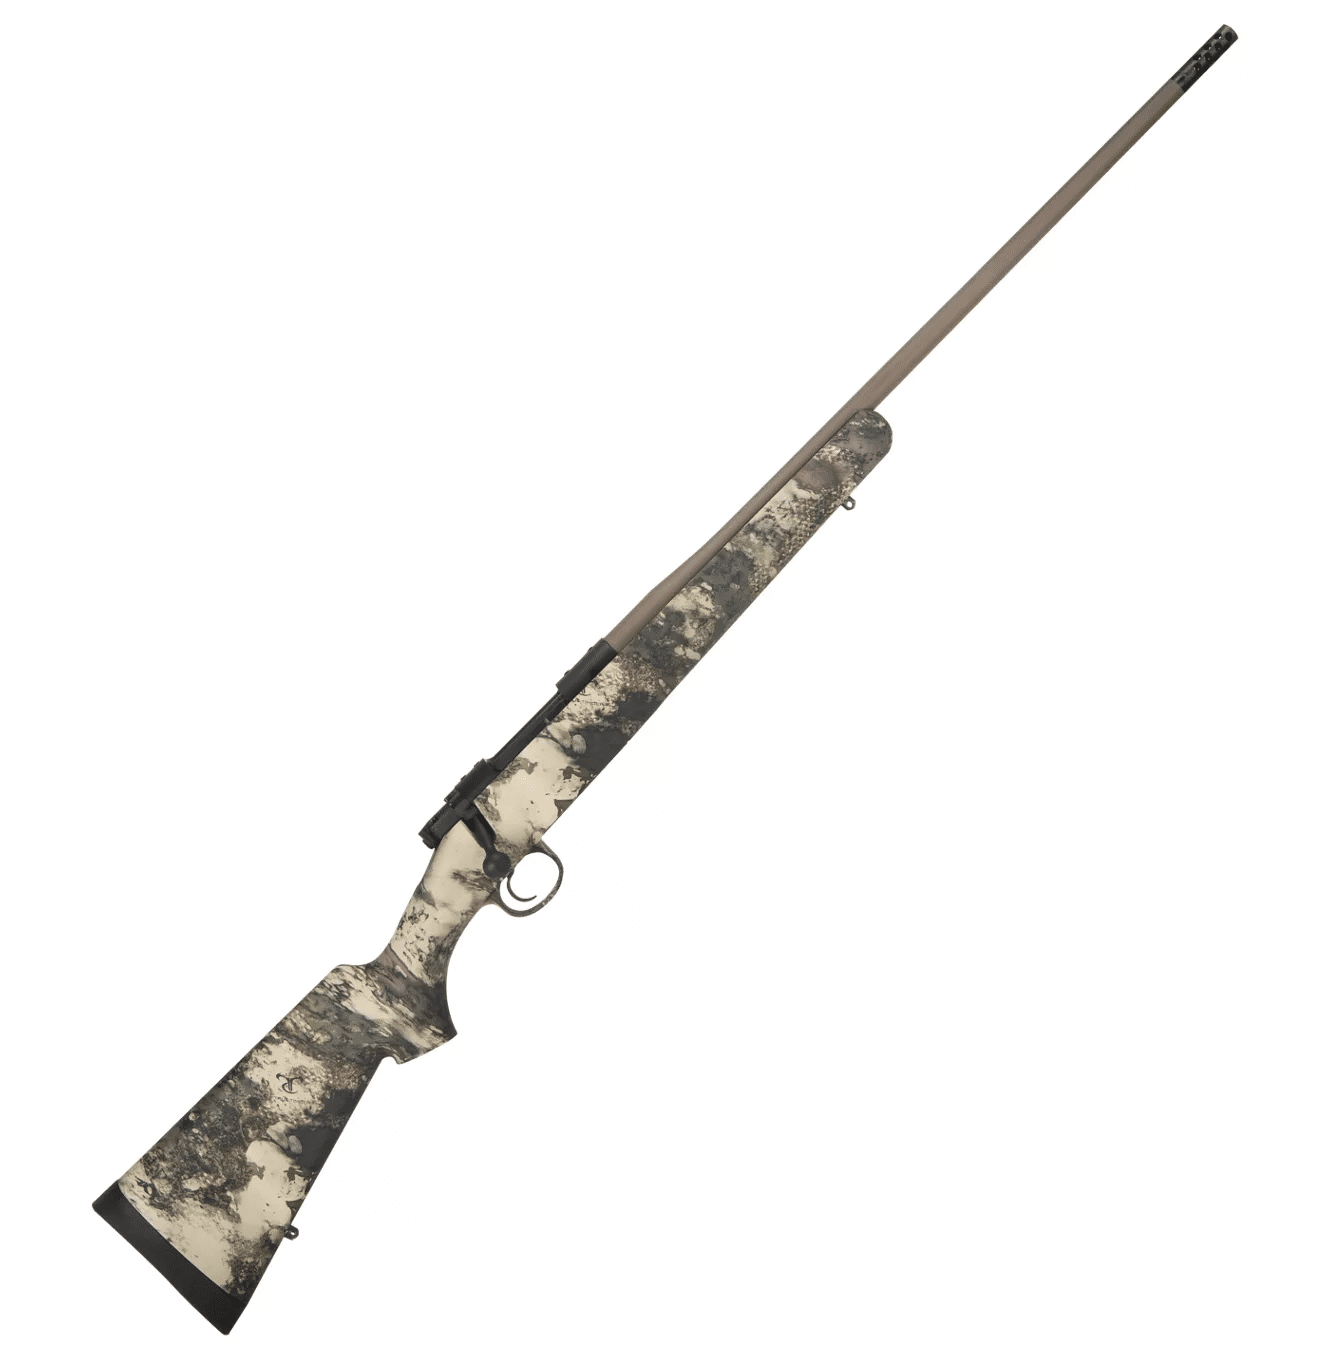 Kimber Hunter Pro Bolt-Action Rifle with TrueTimber O2 Octane Camo Stock